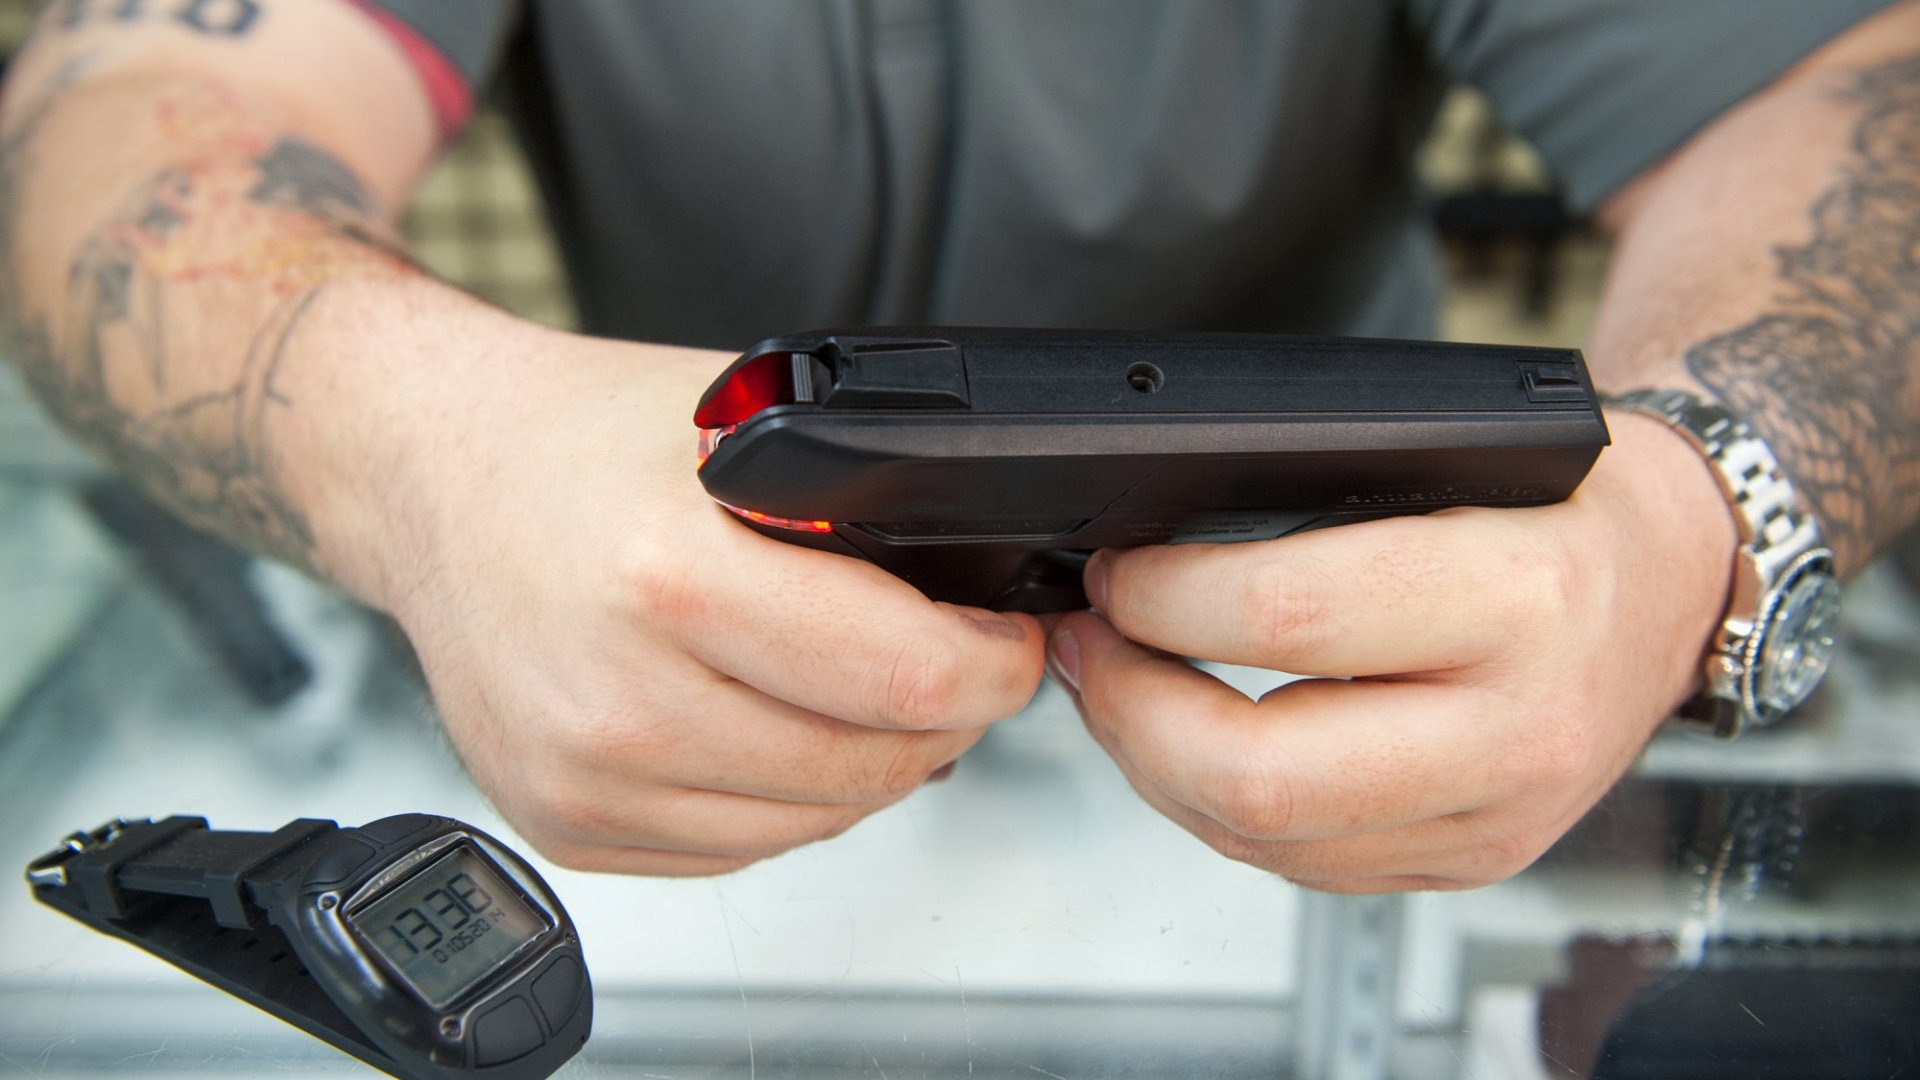 Armatix makes the iP1, a .22 caliber smart gun. The gun will not shoot unless the user is wearing the RFID watch.